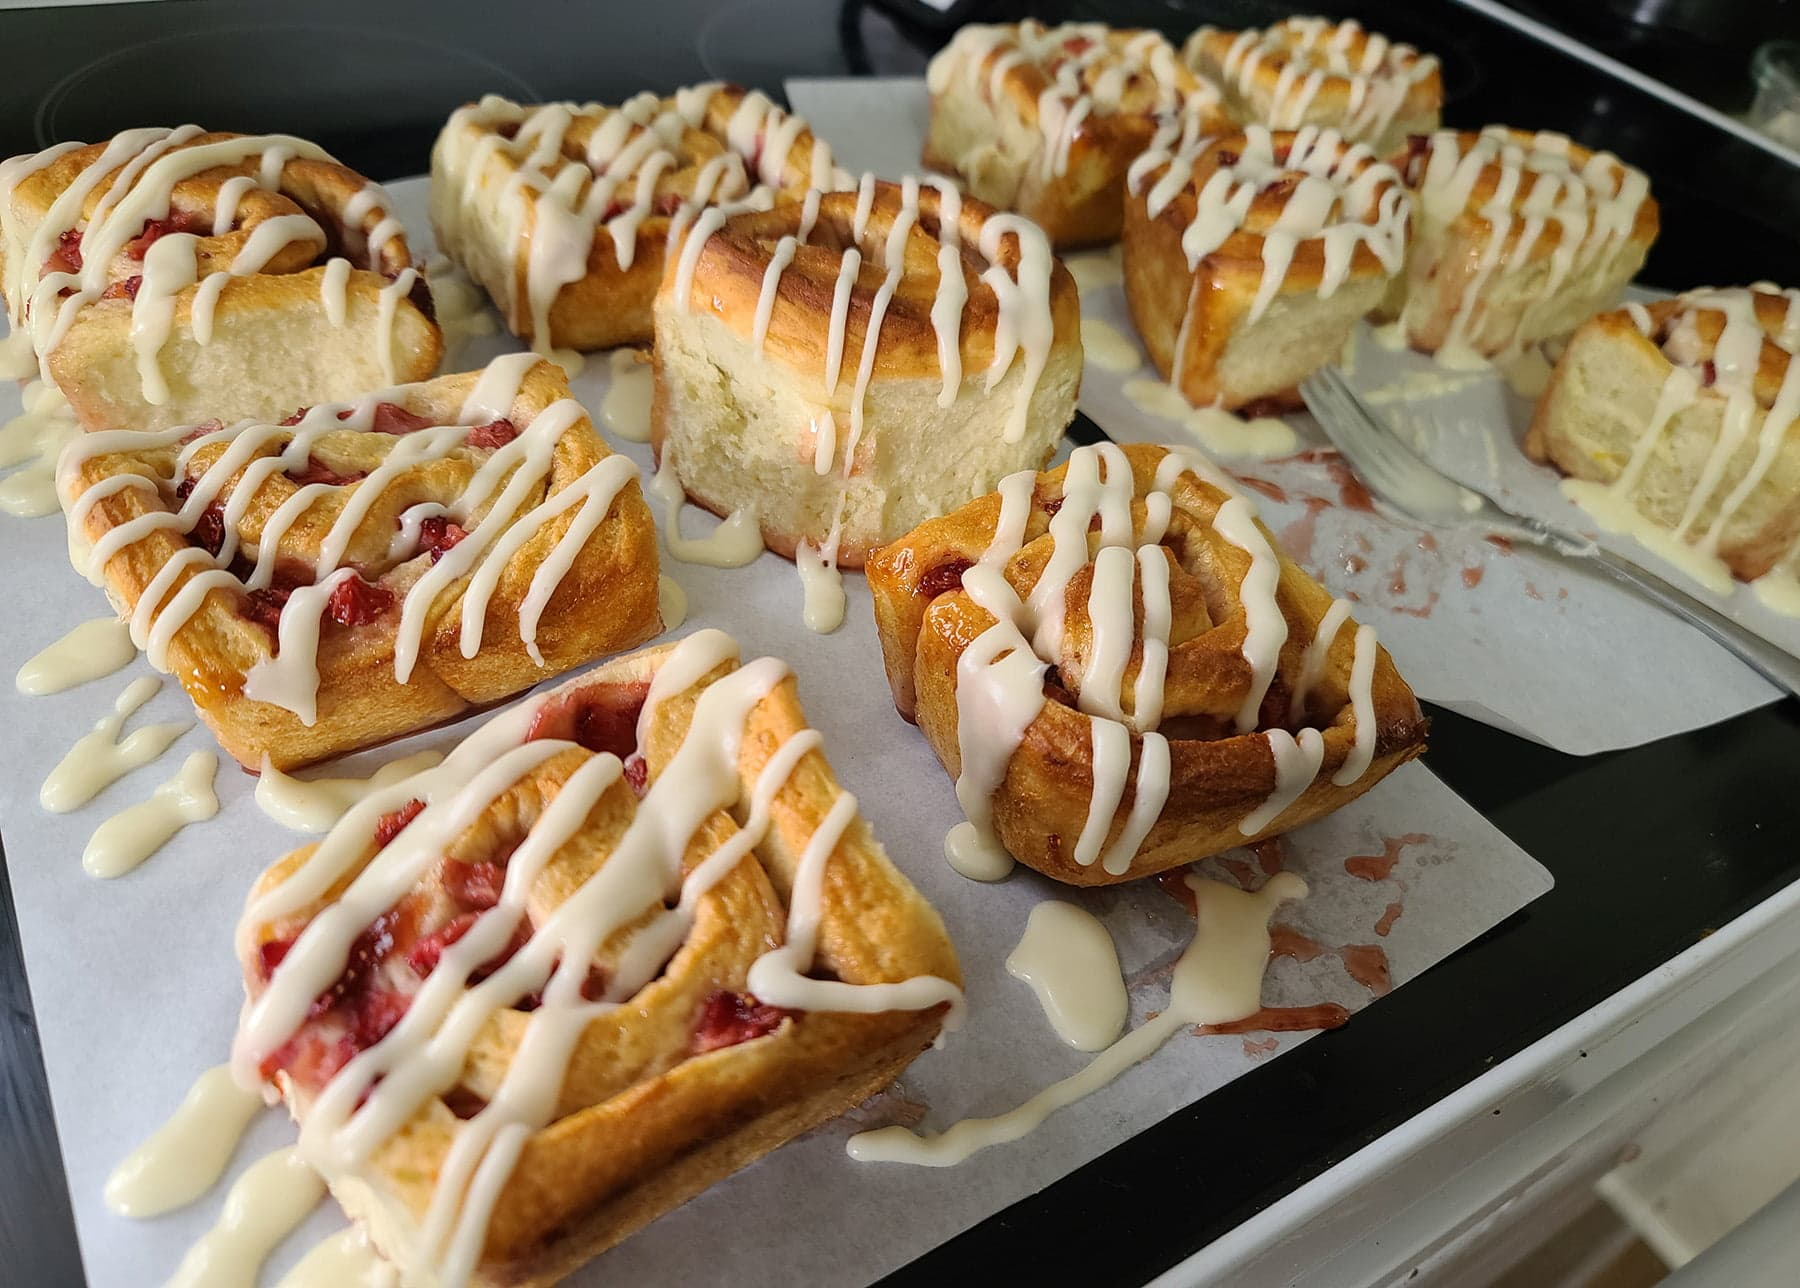 11 strawberry orange rolls are arranged on a sheet of parchment, with a pale orange glaze drizzled across in a zog zag fashion.